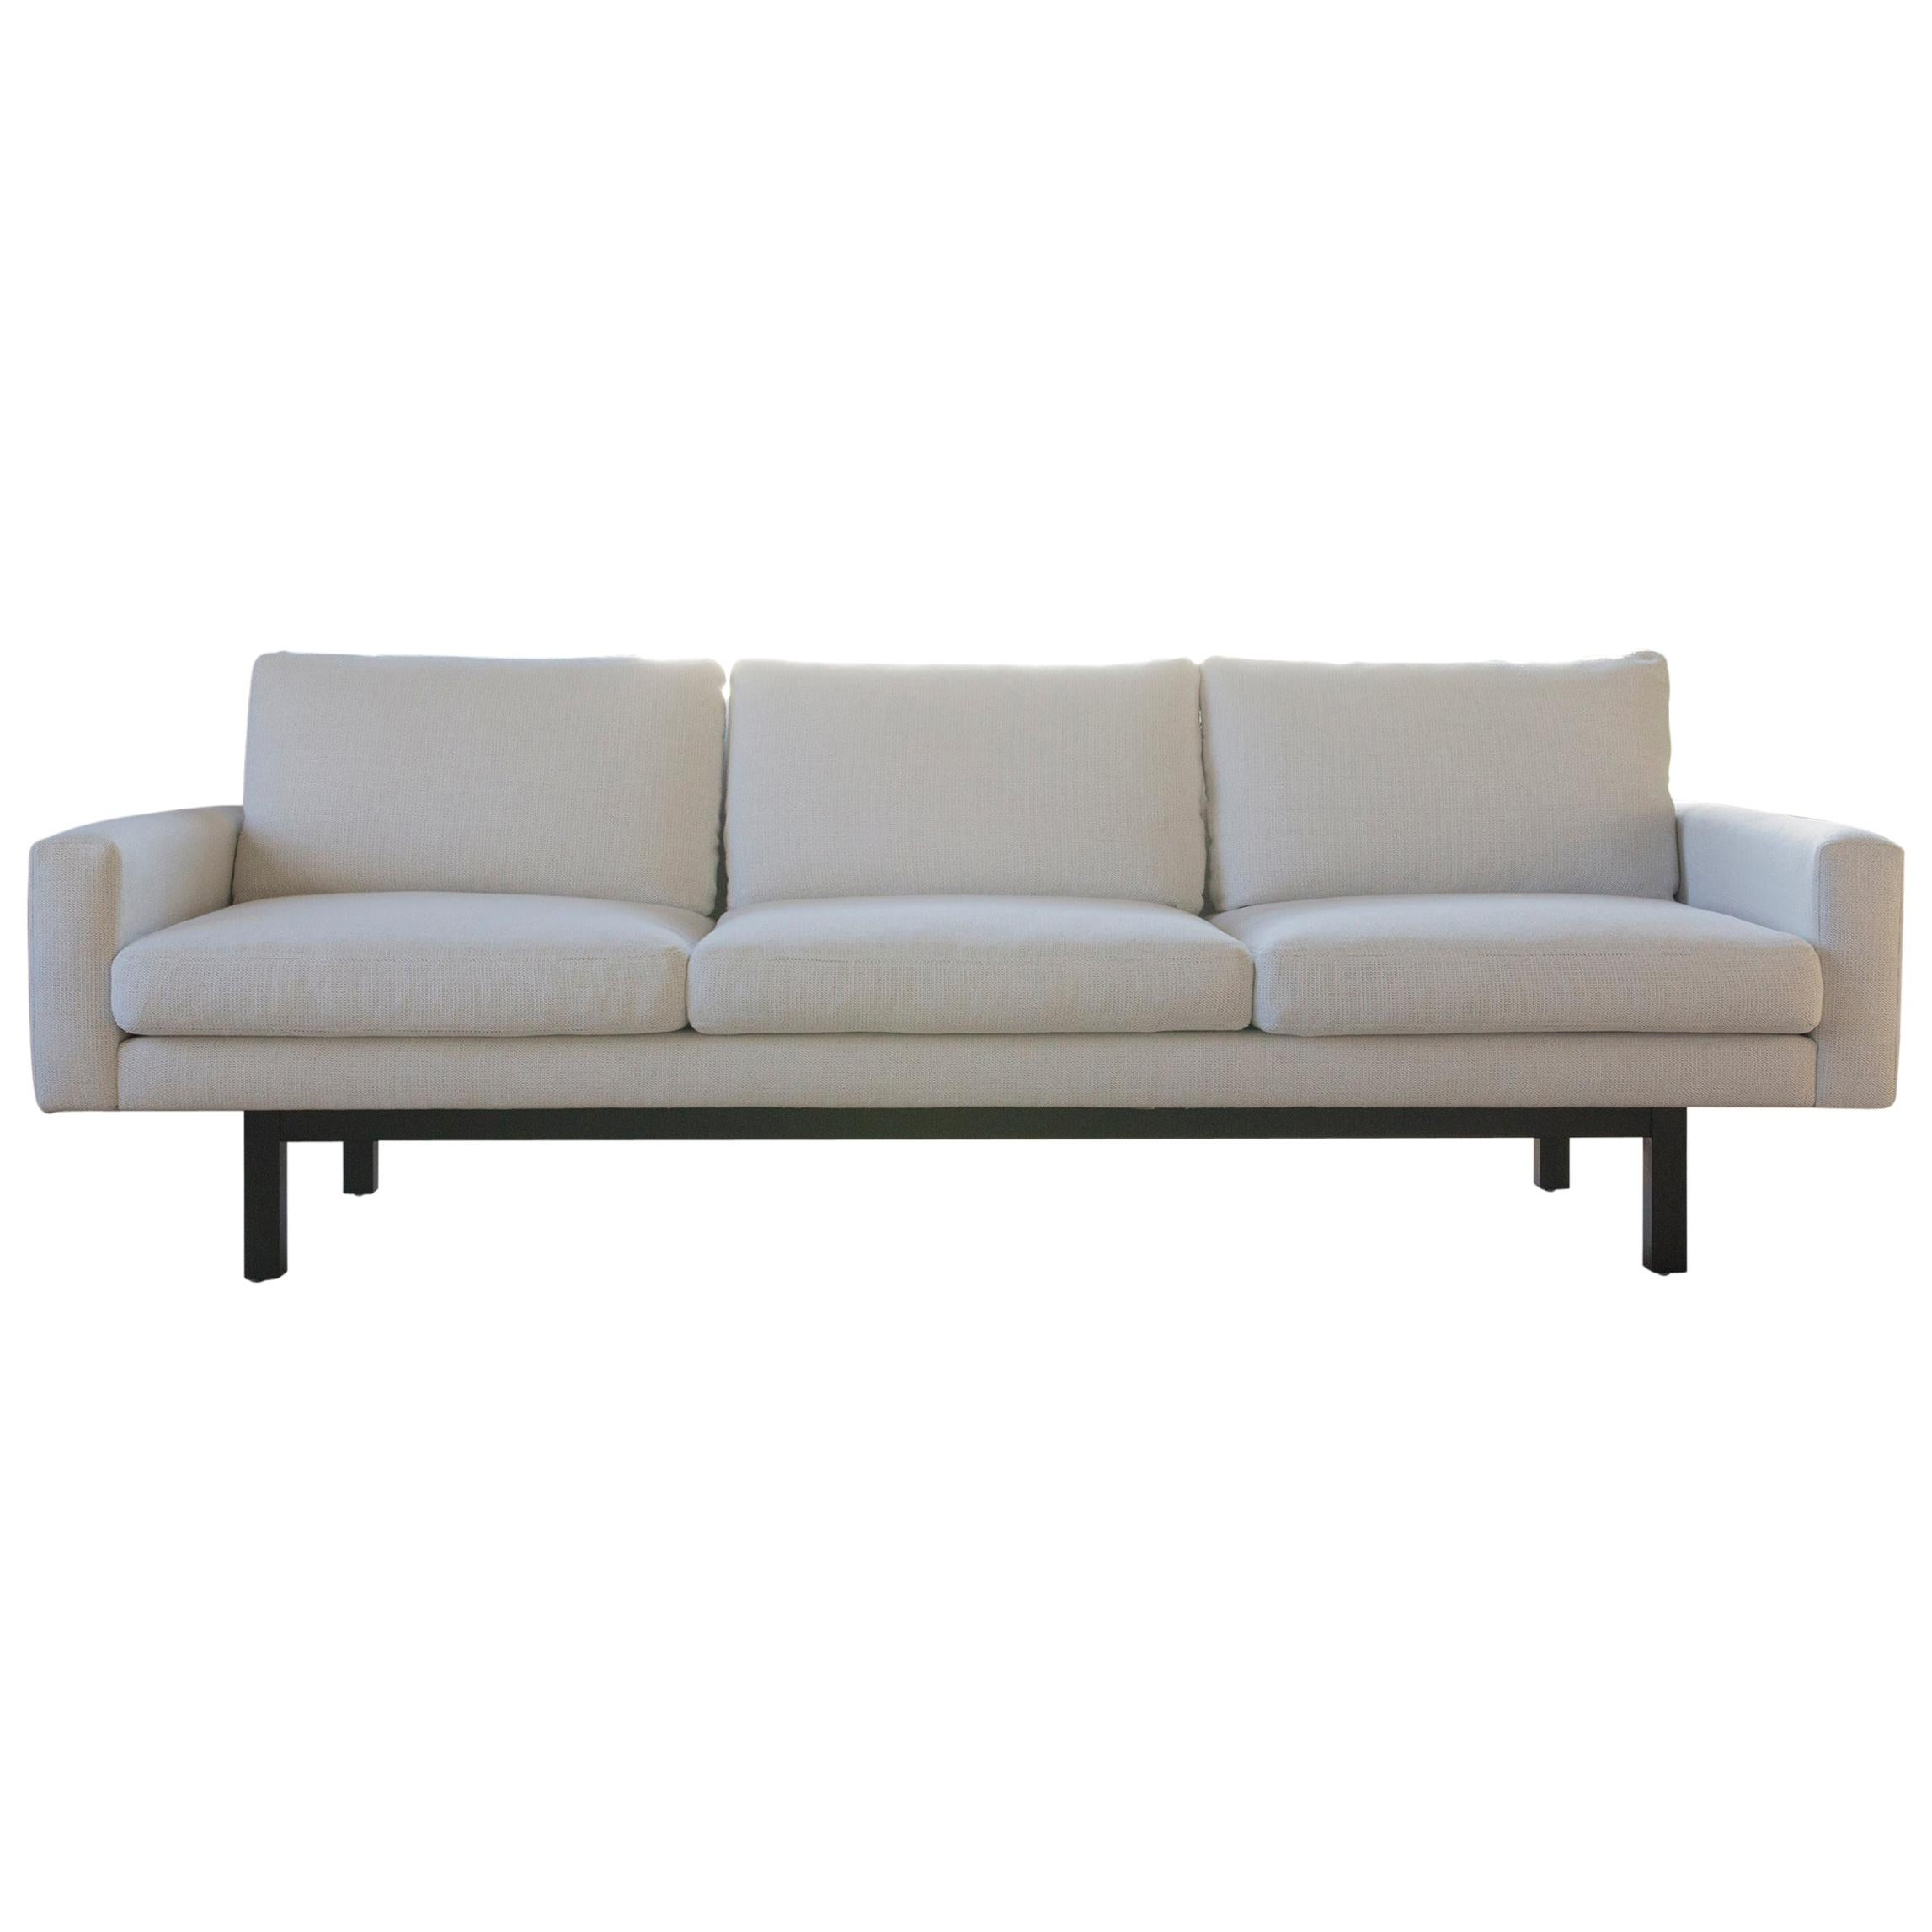 Contemporary Standard Sofa in White